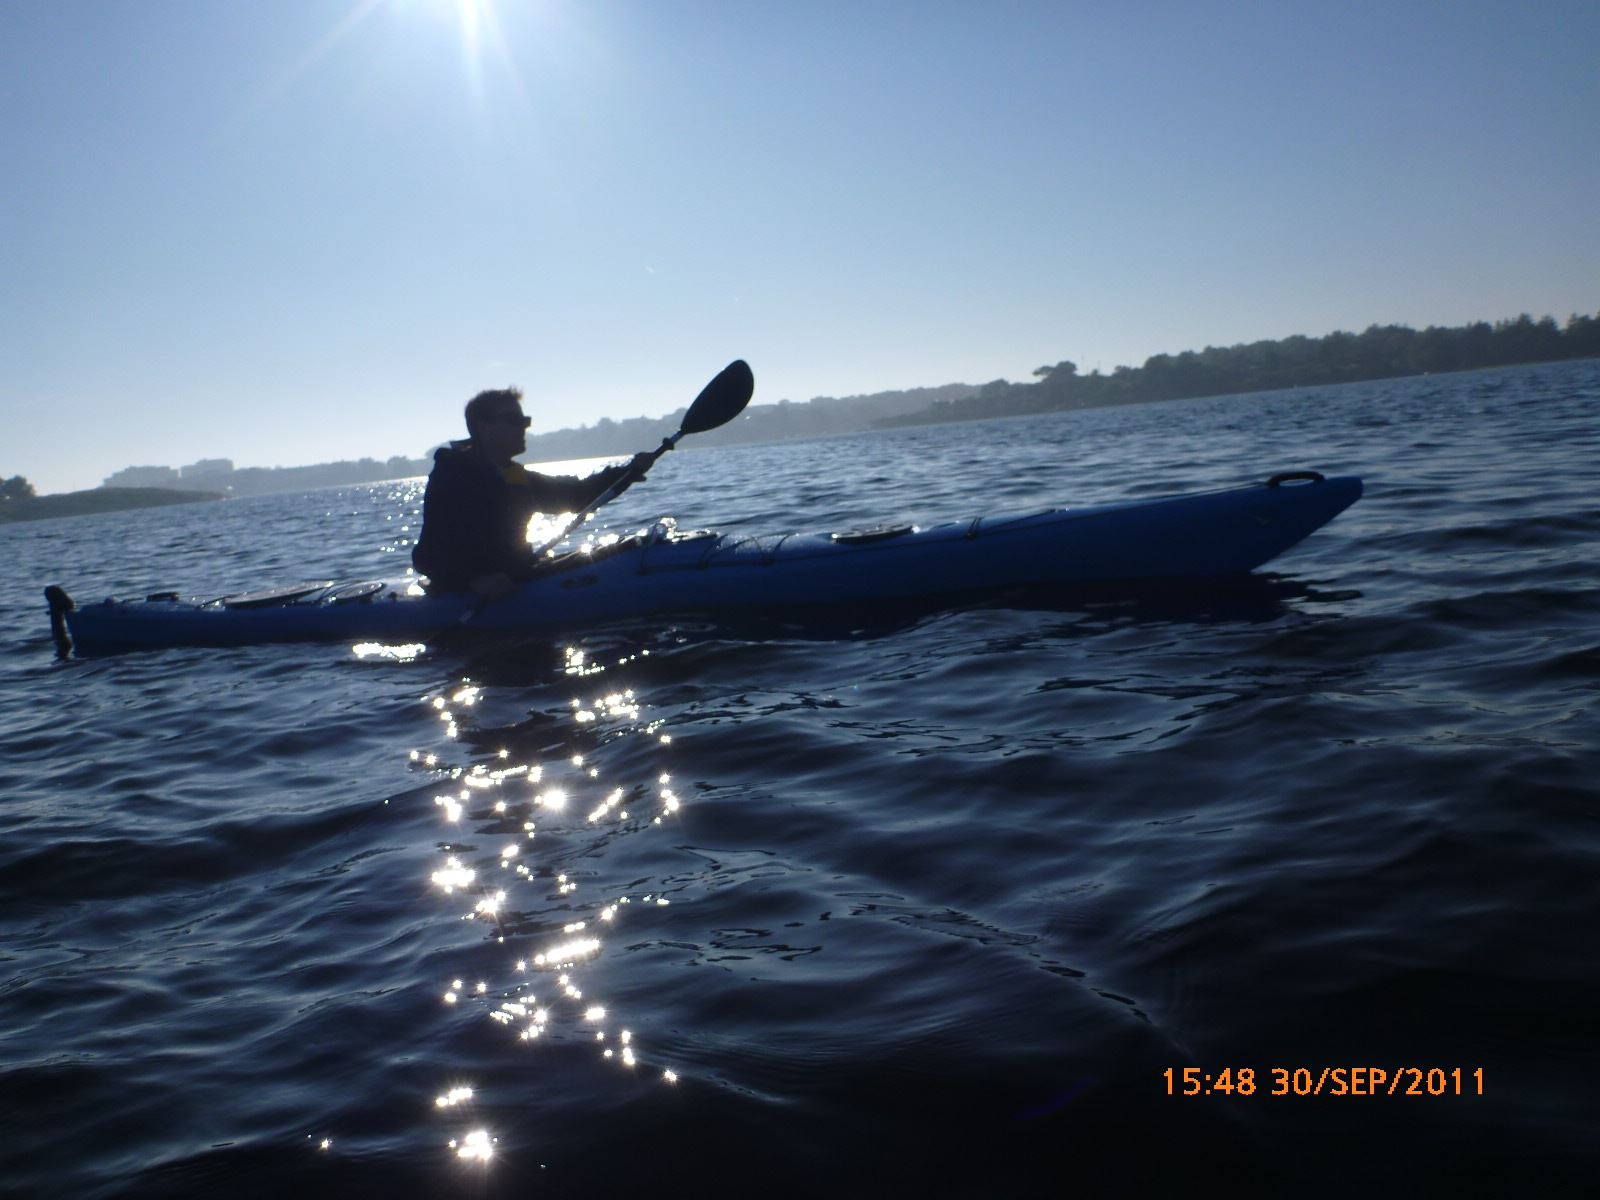 Kayaking in the archipelago of Karlskrona and grilled food at dusk